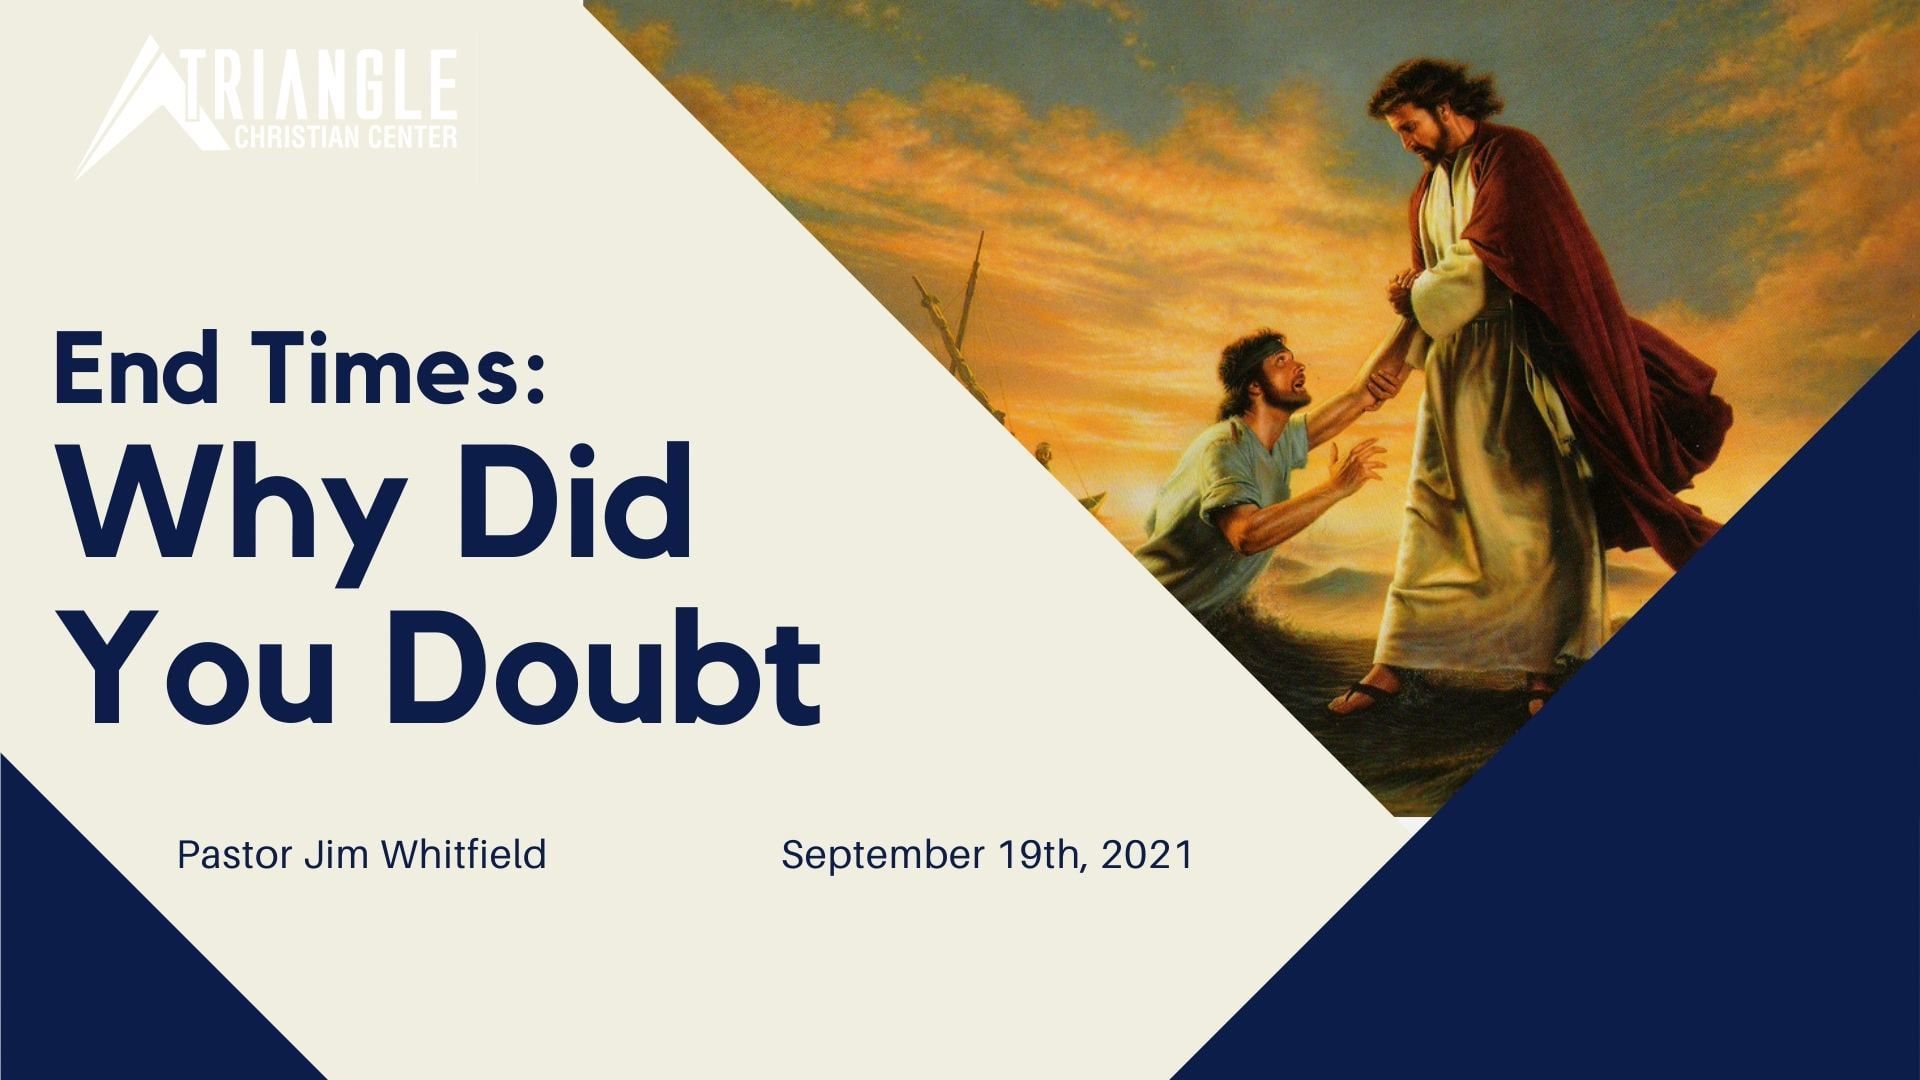 End Times Series: Why Did You Doubt - September 19th, 2021